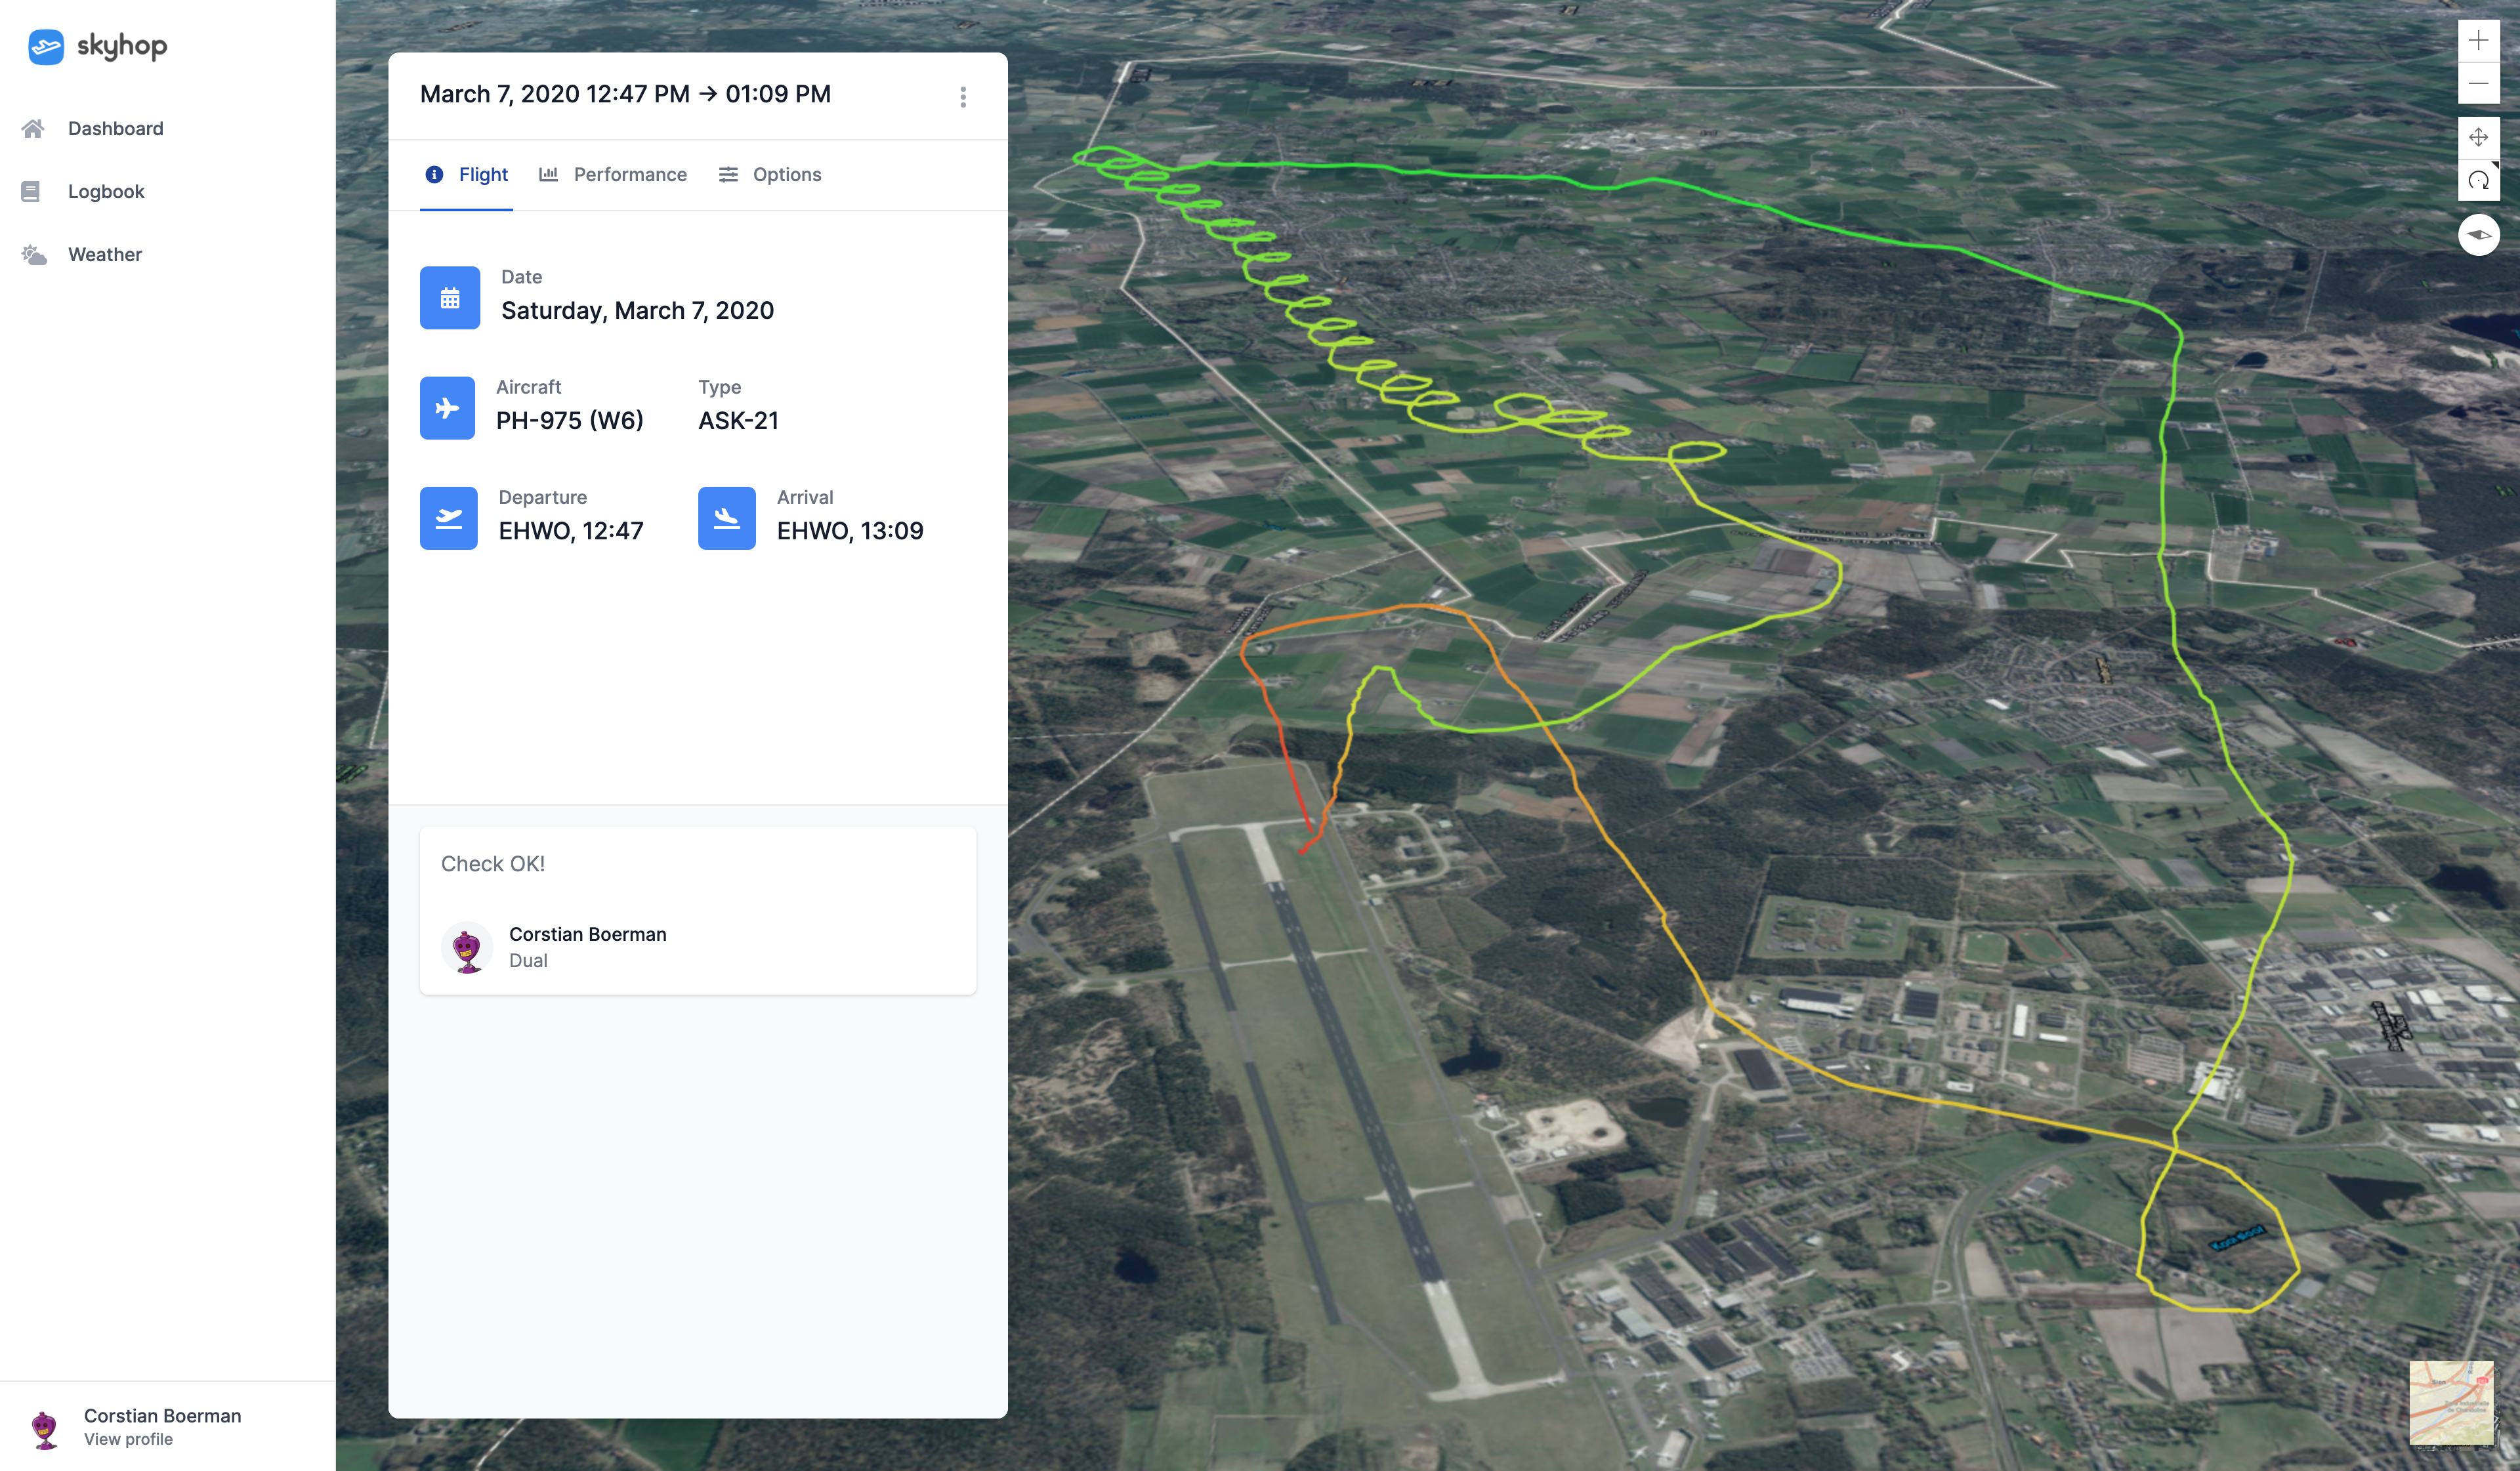 three dimensional (3D) map showing the flight path in a glider with some general flight information such as departure and arrival times as well as airfield information in the left